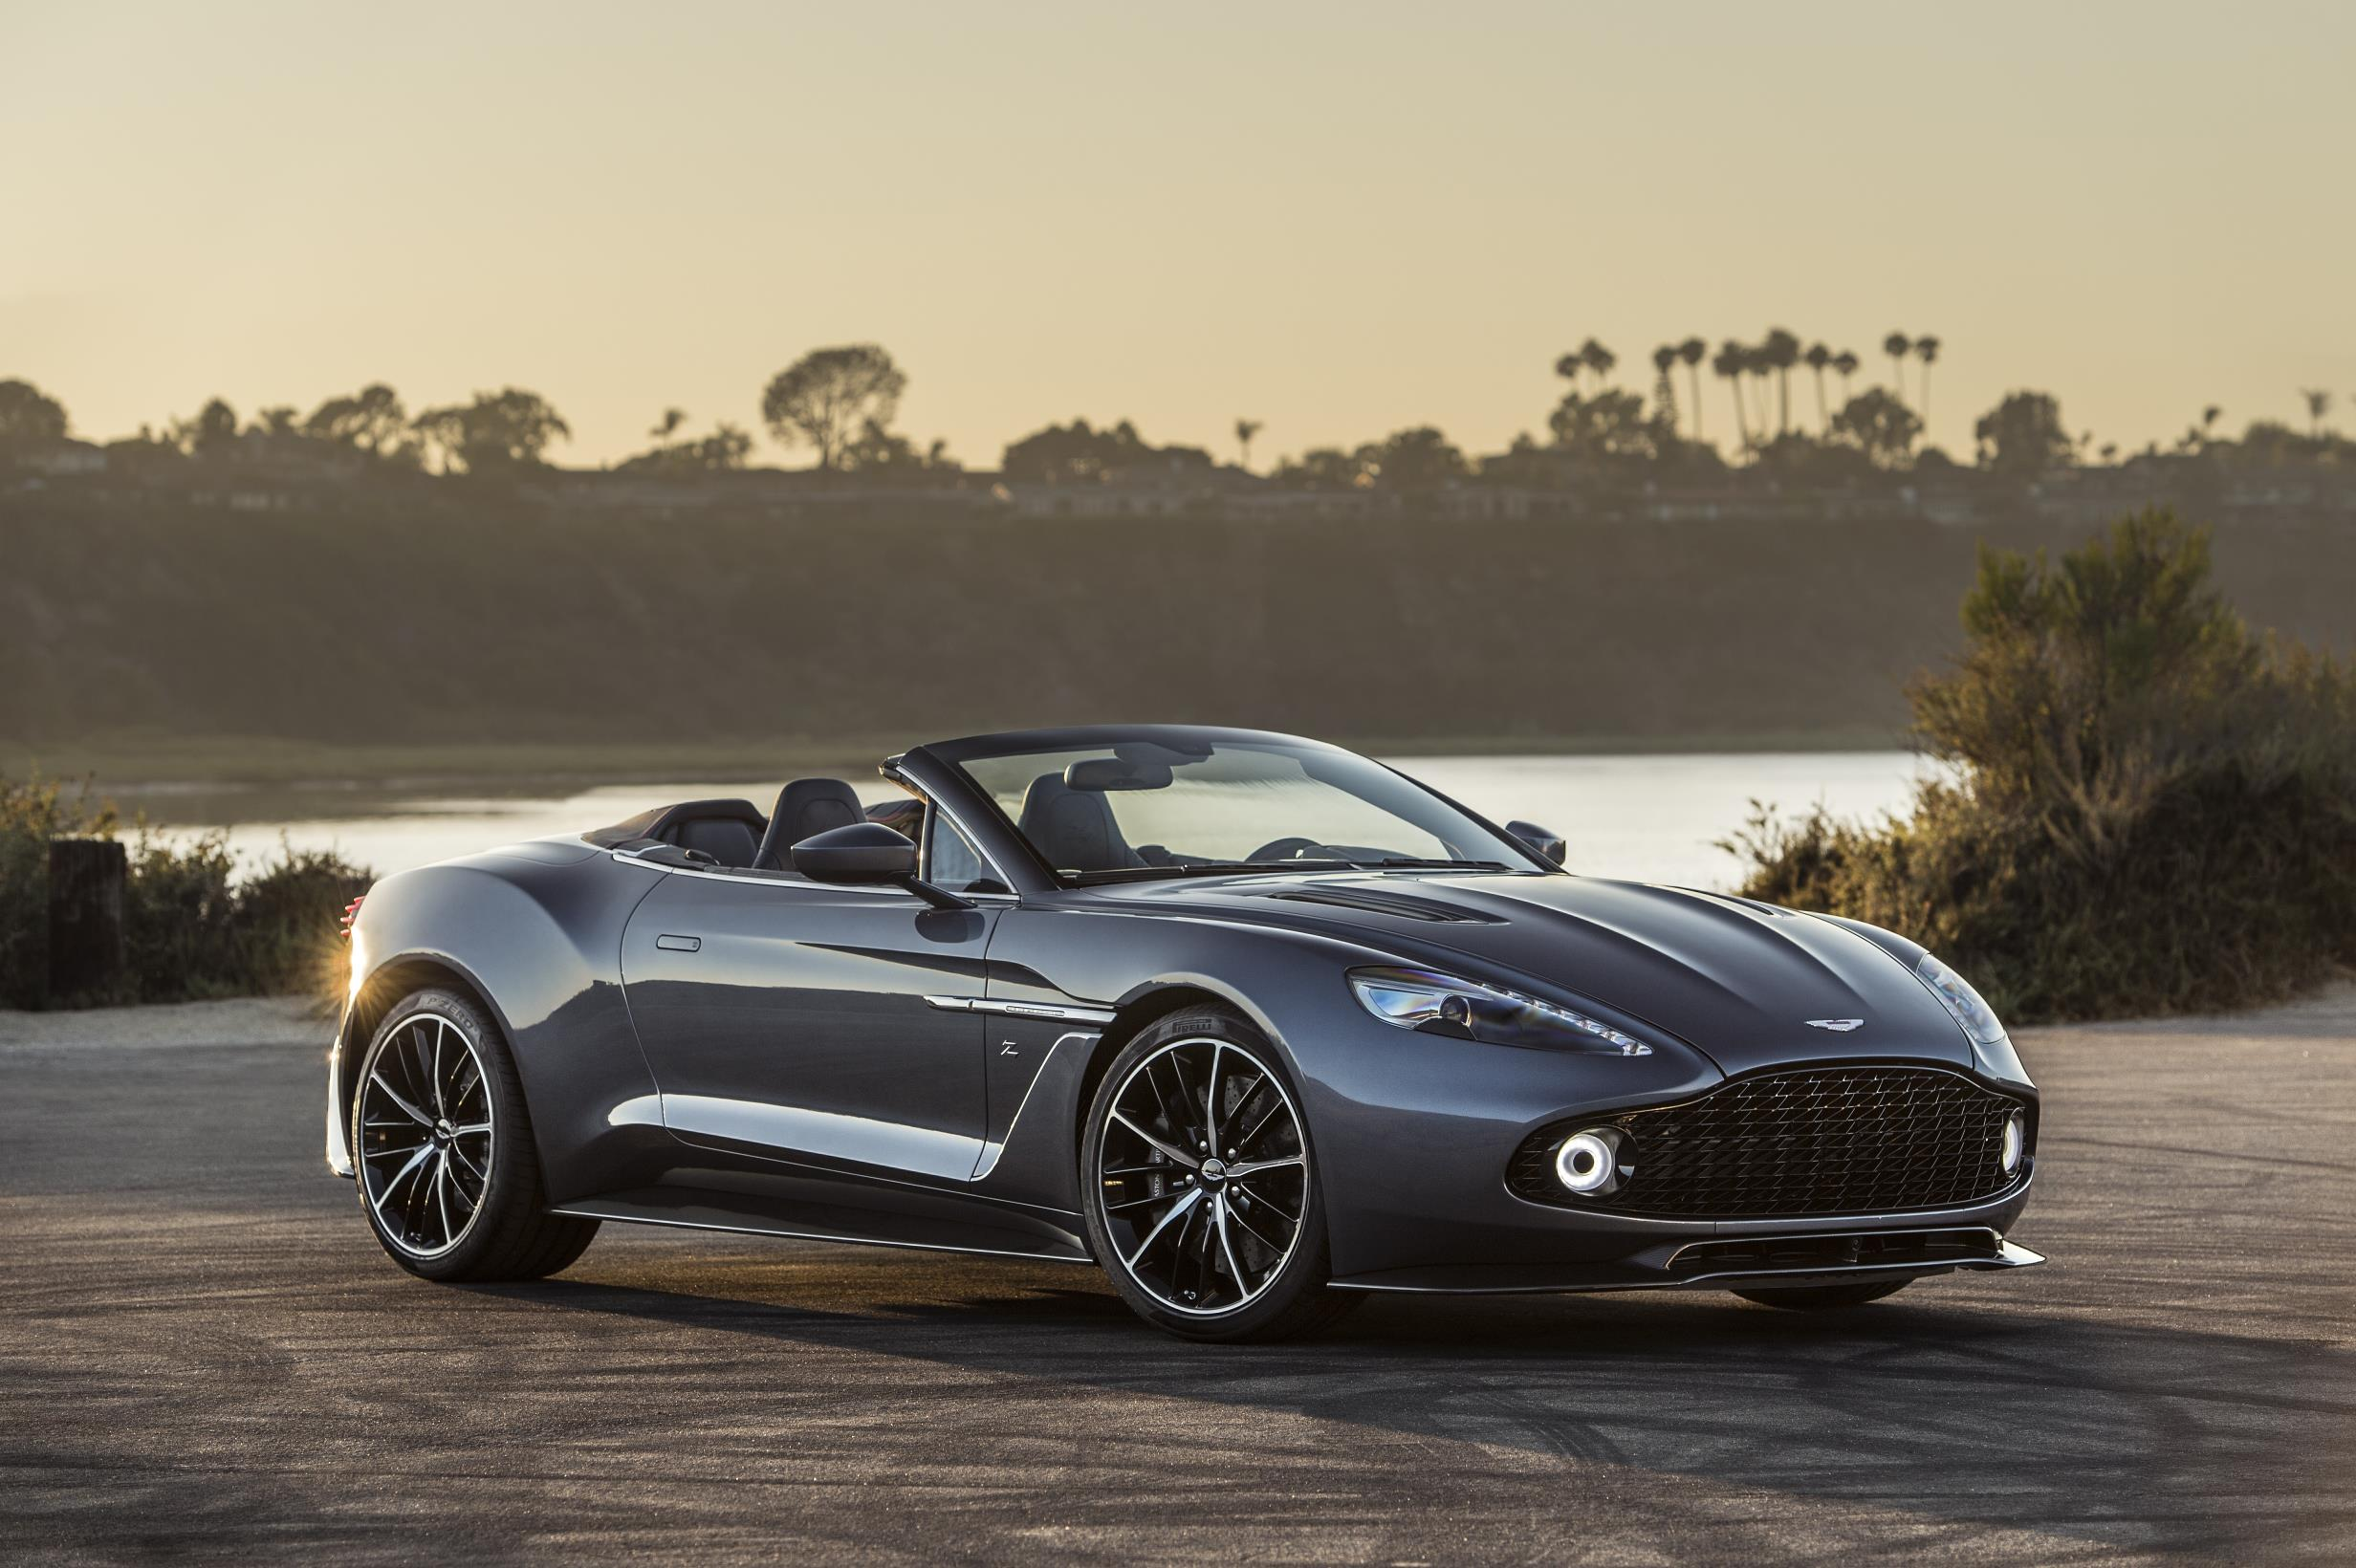 Rims For Cheap >> Aston Martin Vanquish Zagato Shooting Brake Joins Speedster, Volante, Coupe - autoevolution